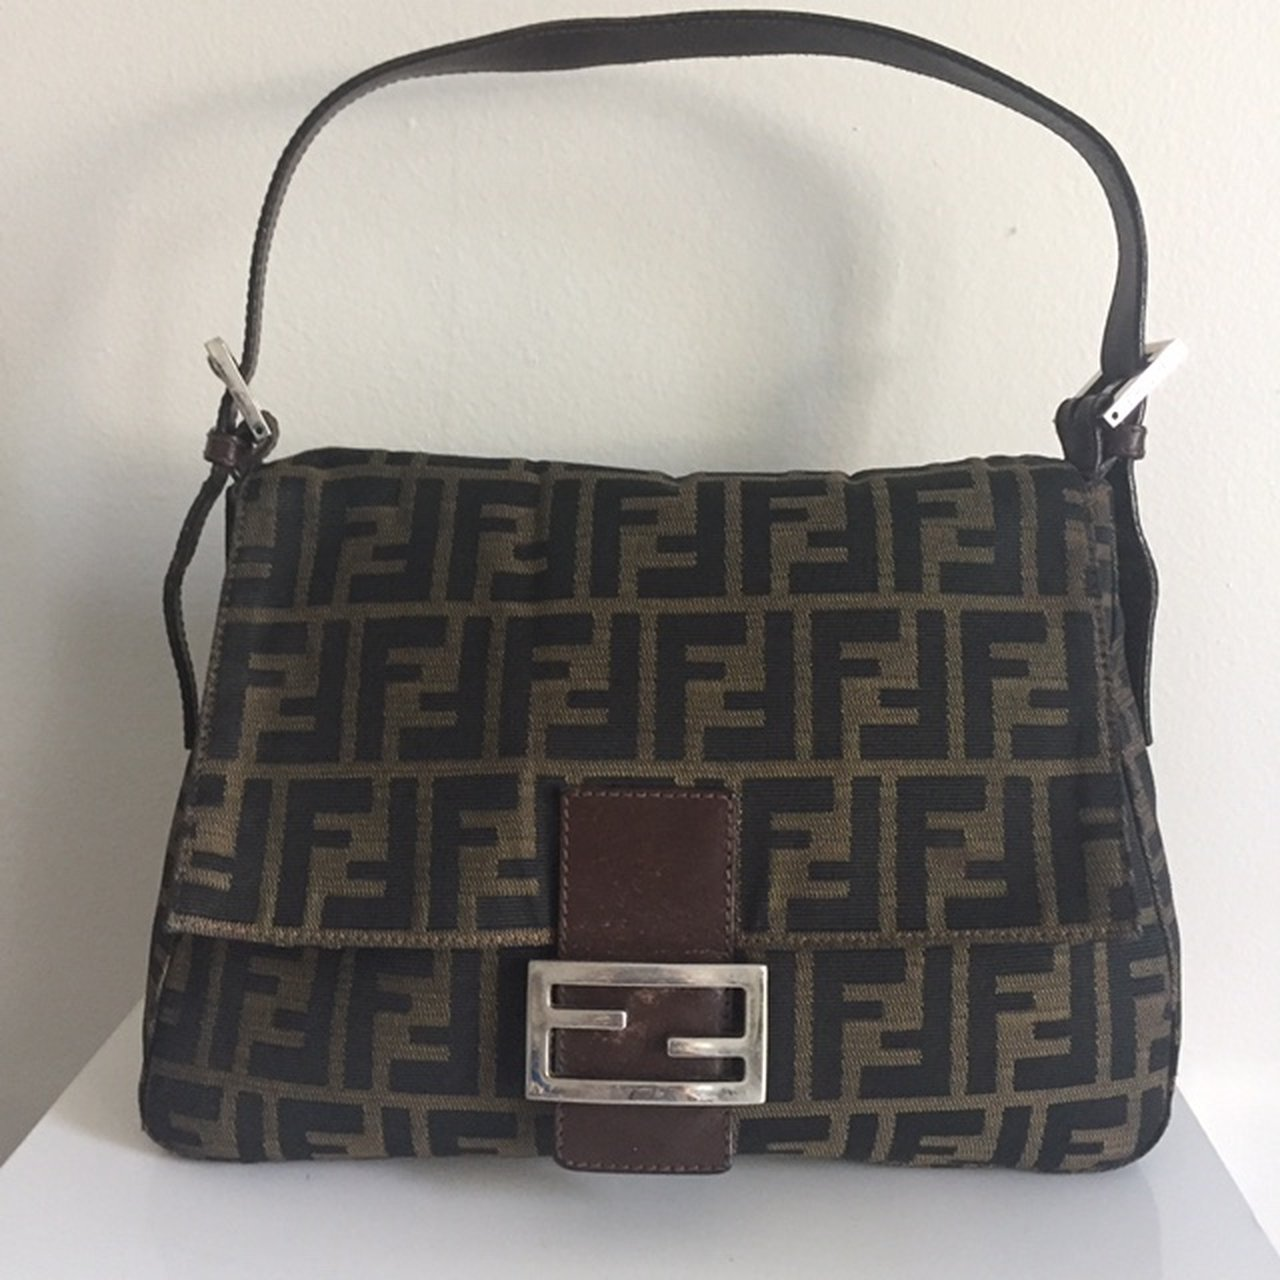 234027f20ebcf  judestreasures. 4 months ago. United States. Authentic Fendi Zucca Mama  Baguette Tobacco. Stylish shoulder bag ...